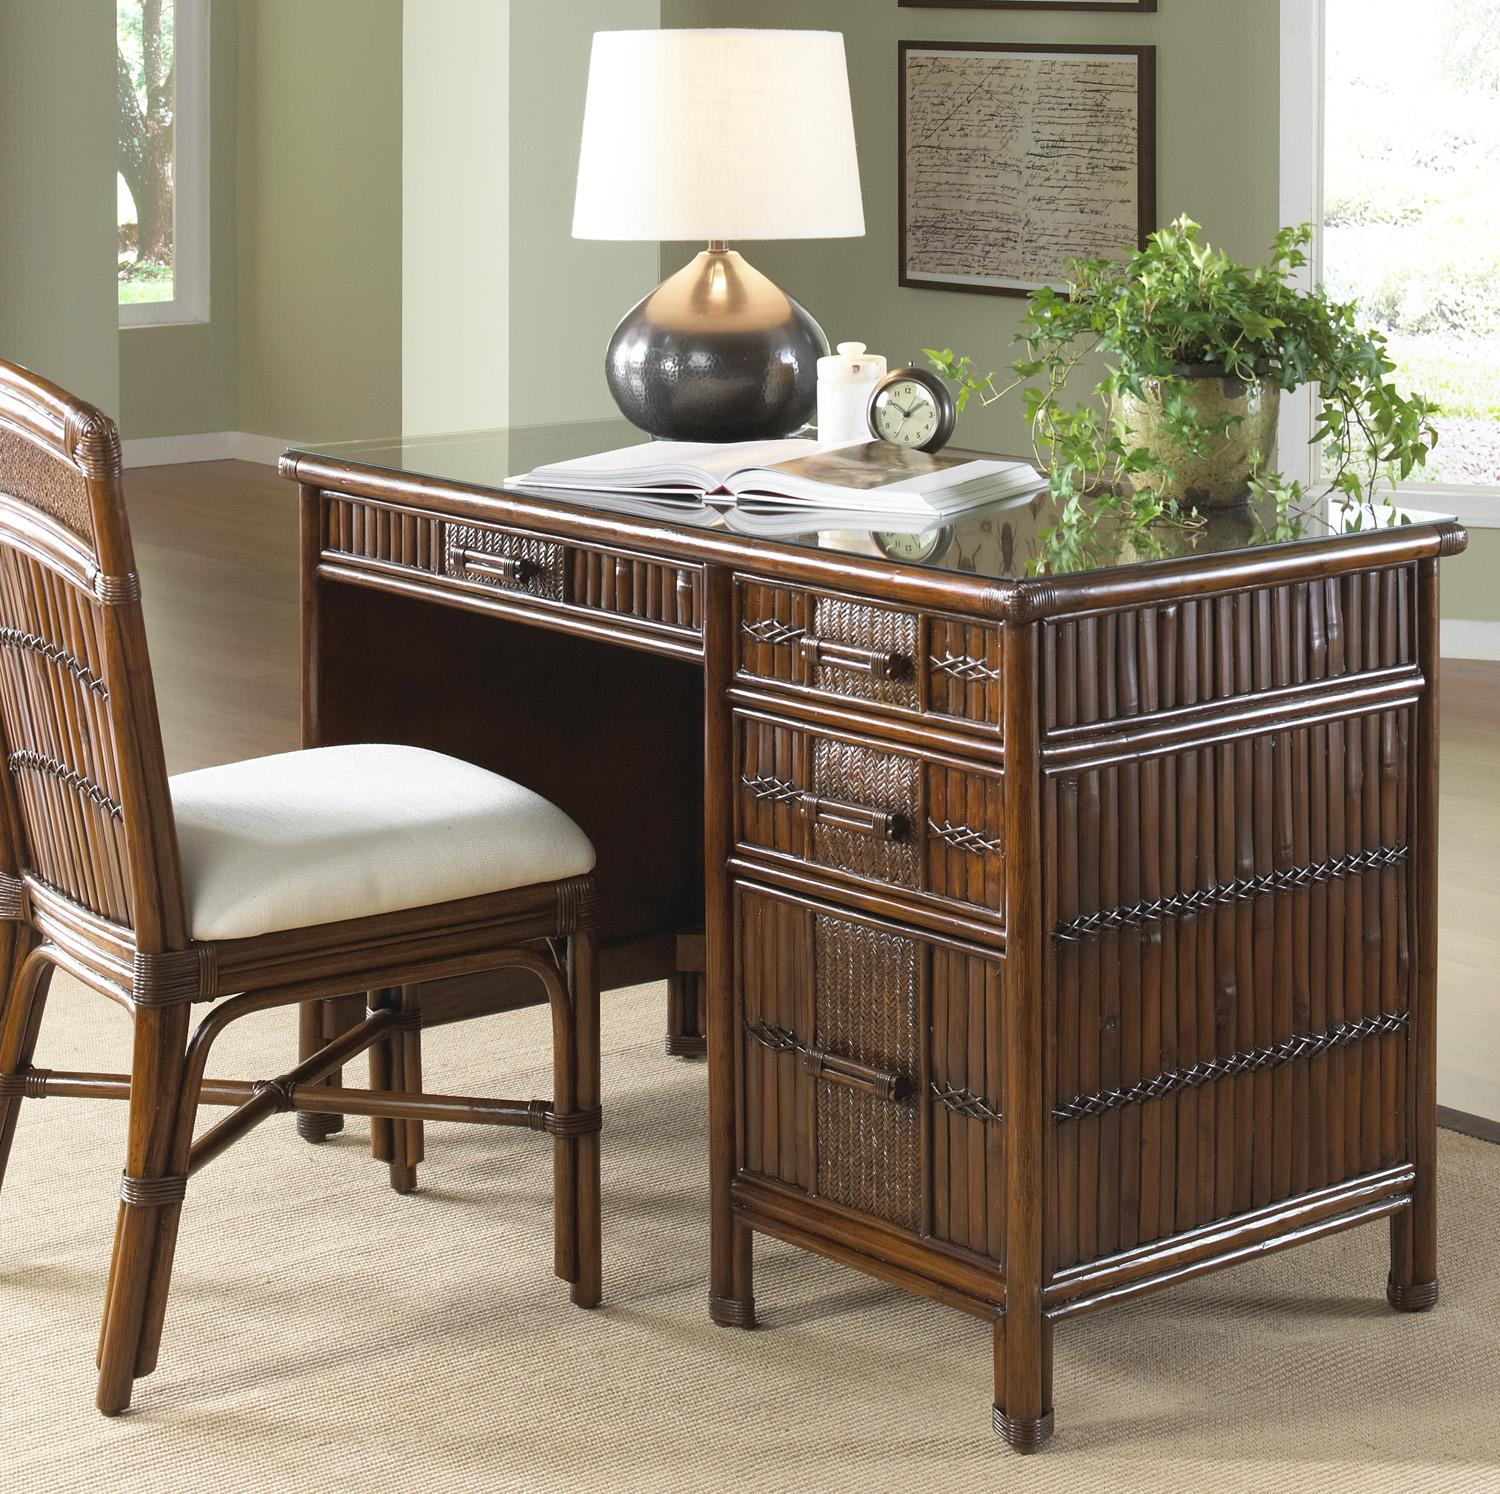 Polynesian Rattan & Bamboo Desk with glass